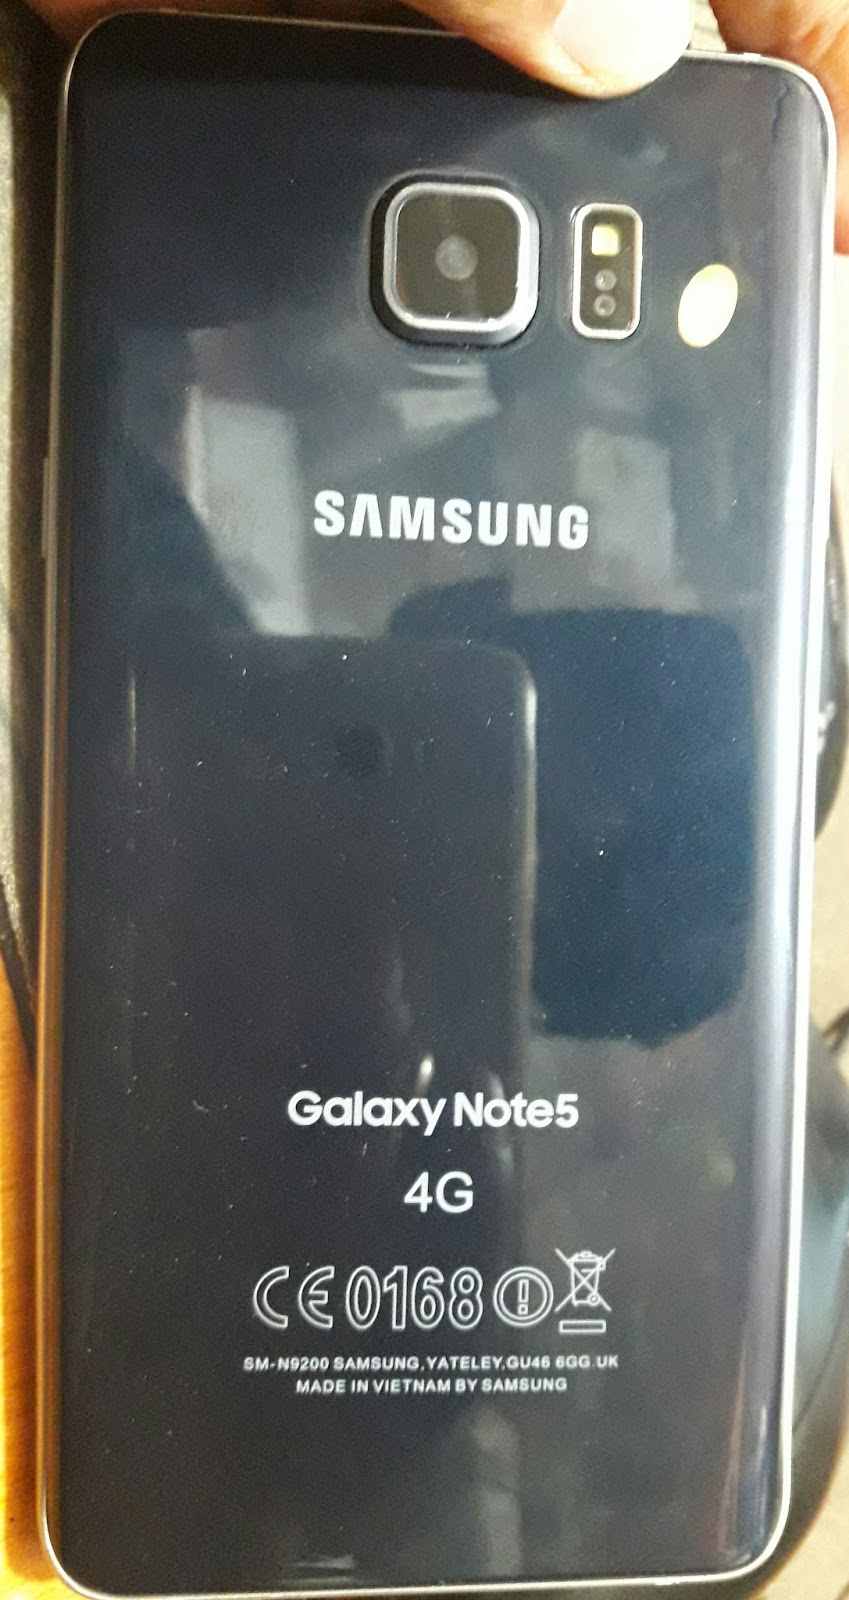 Galaxy Note 5 Pro SM-N9200 MT6572 Clone [Stock Rom